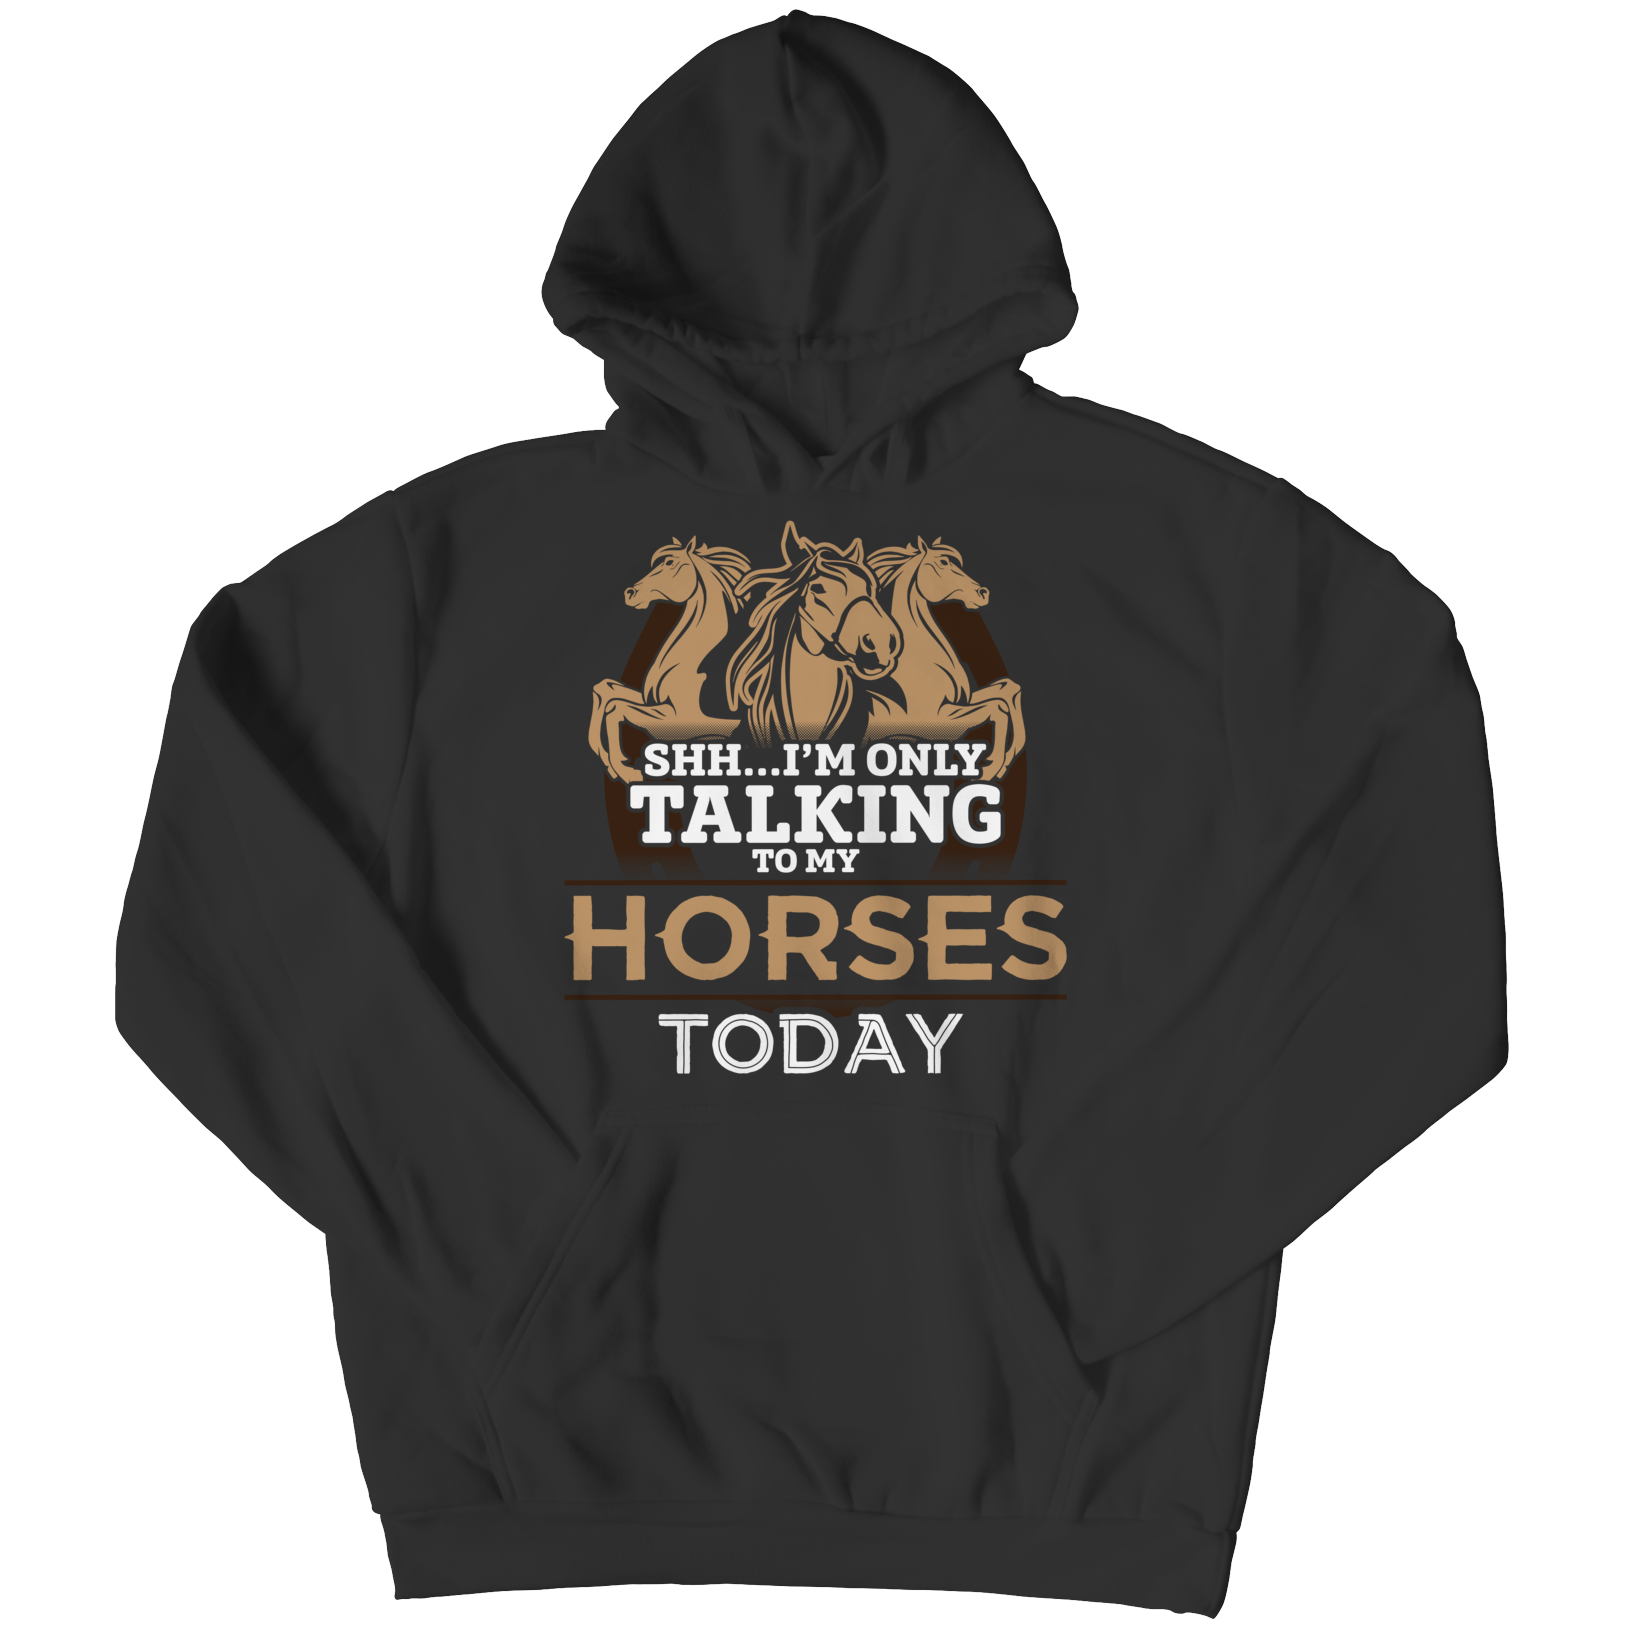 I'm Only Talking To My Horses Today Hoodie